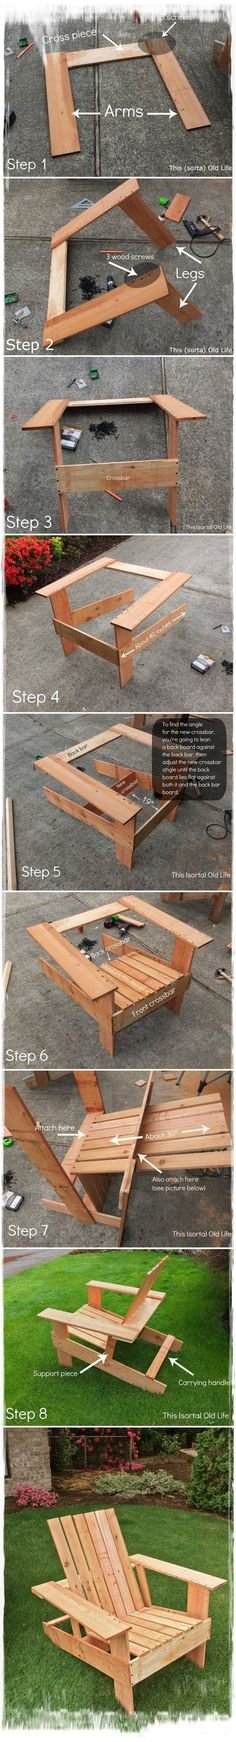 DIY Adirondack Chair Tutorial